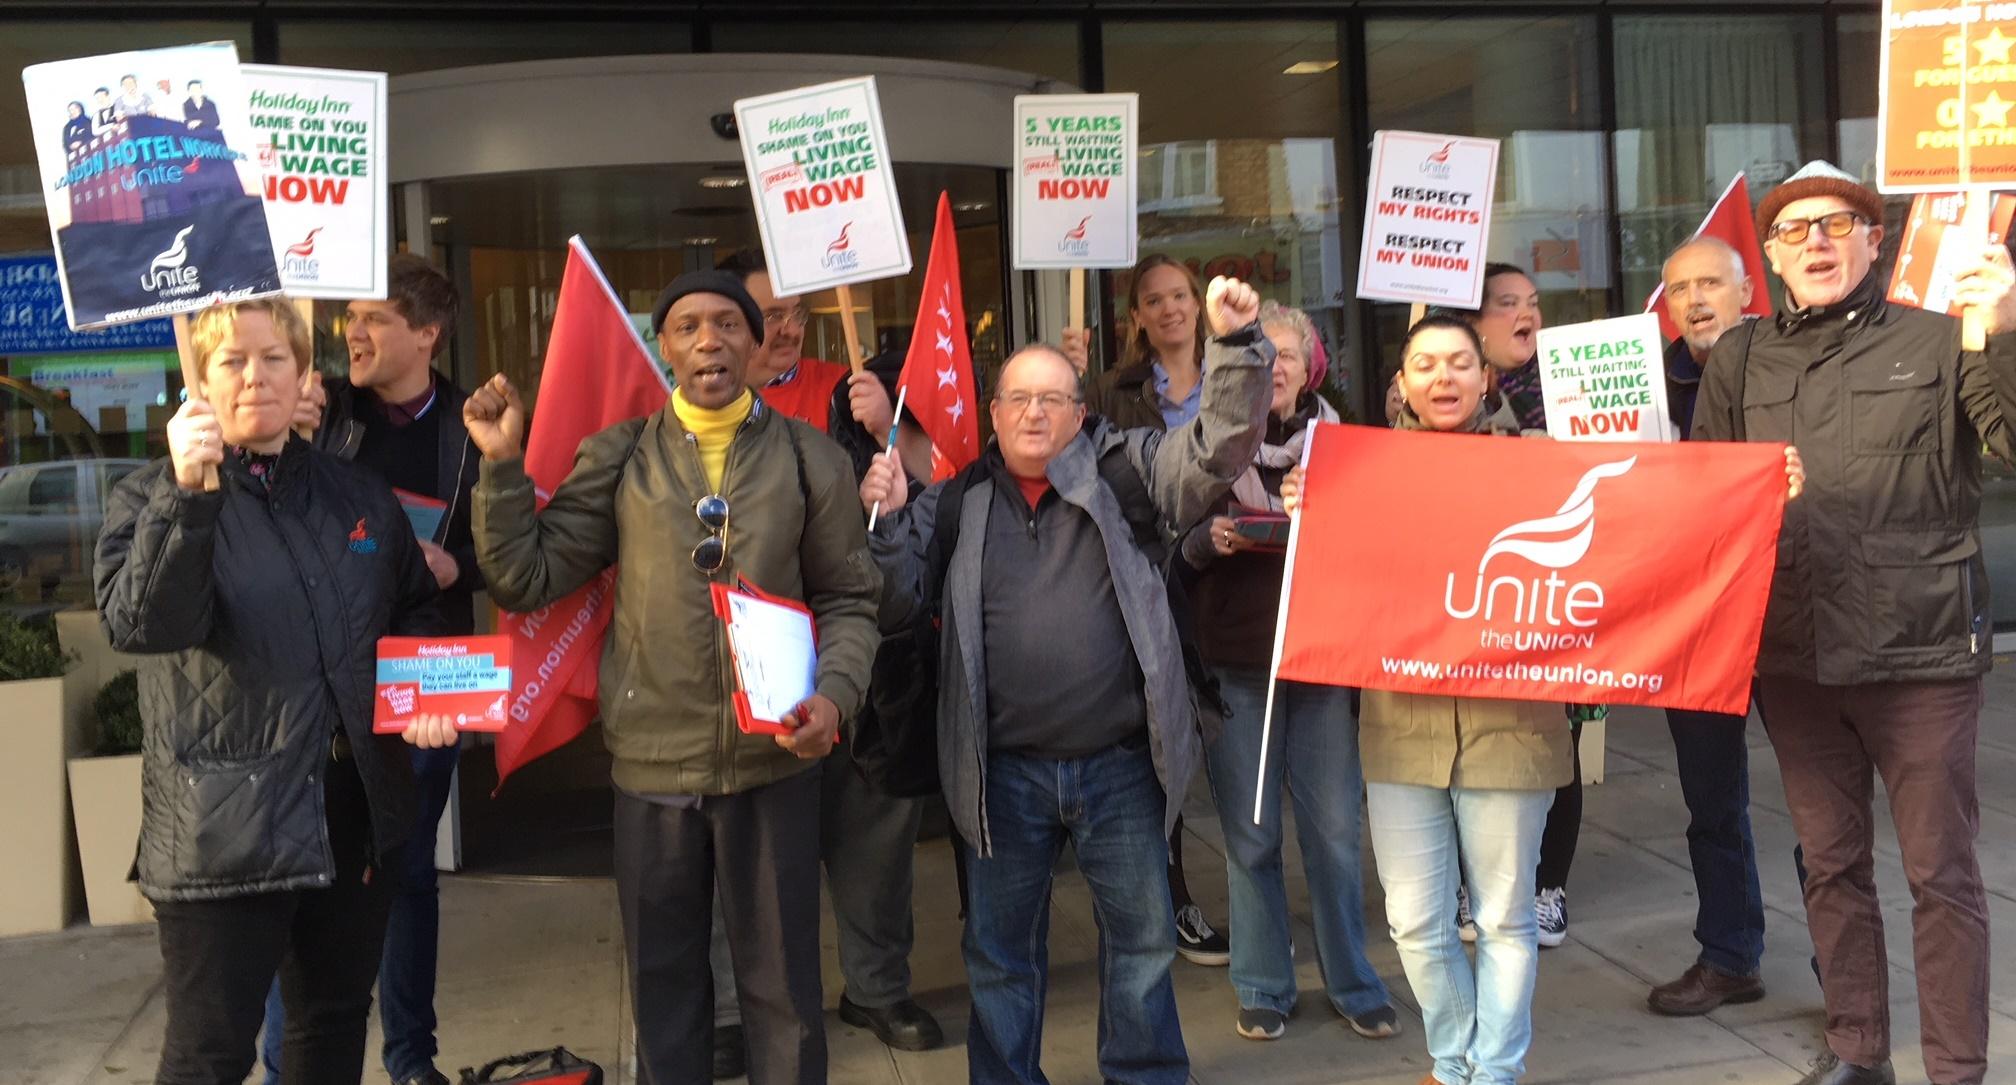 holiday inn living wage protest